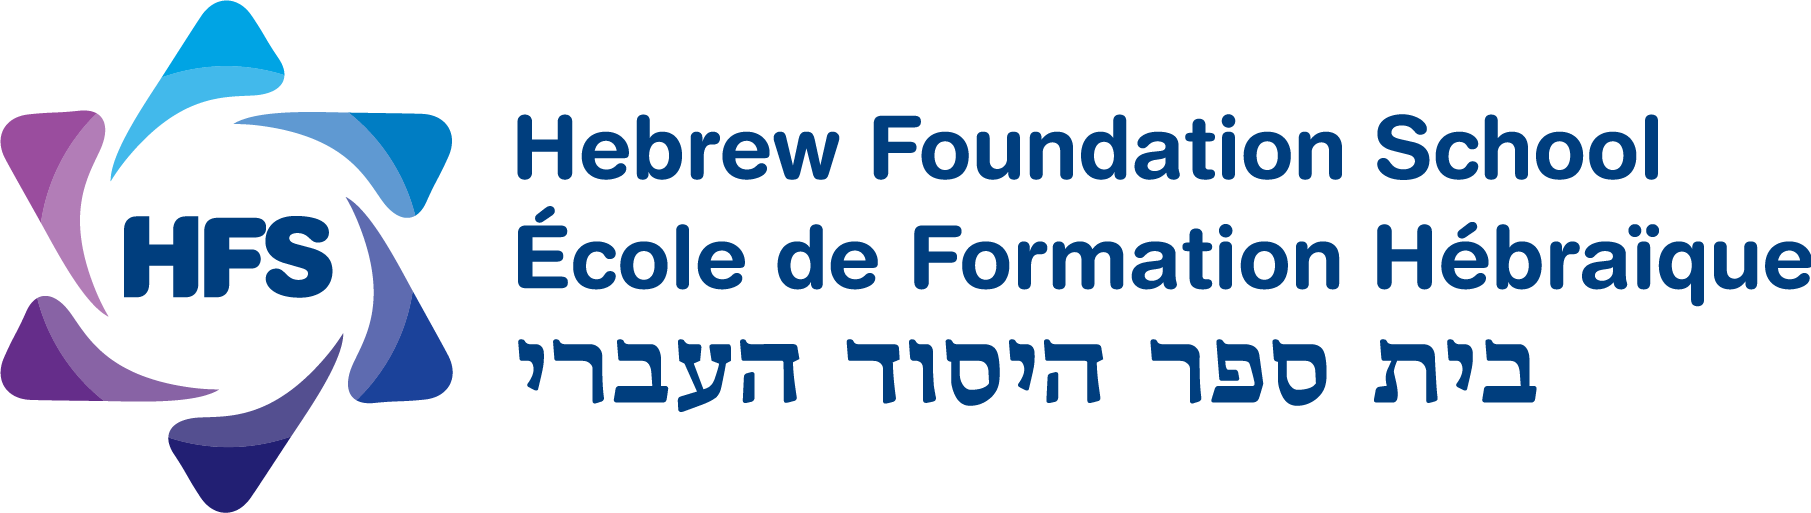 Hebrew Foundation School